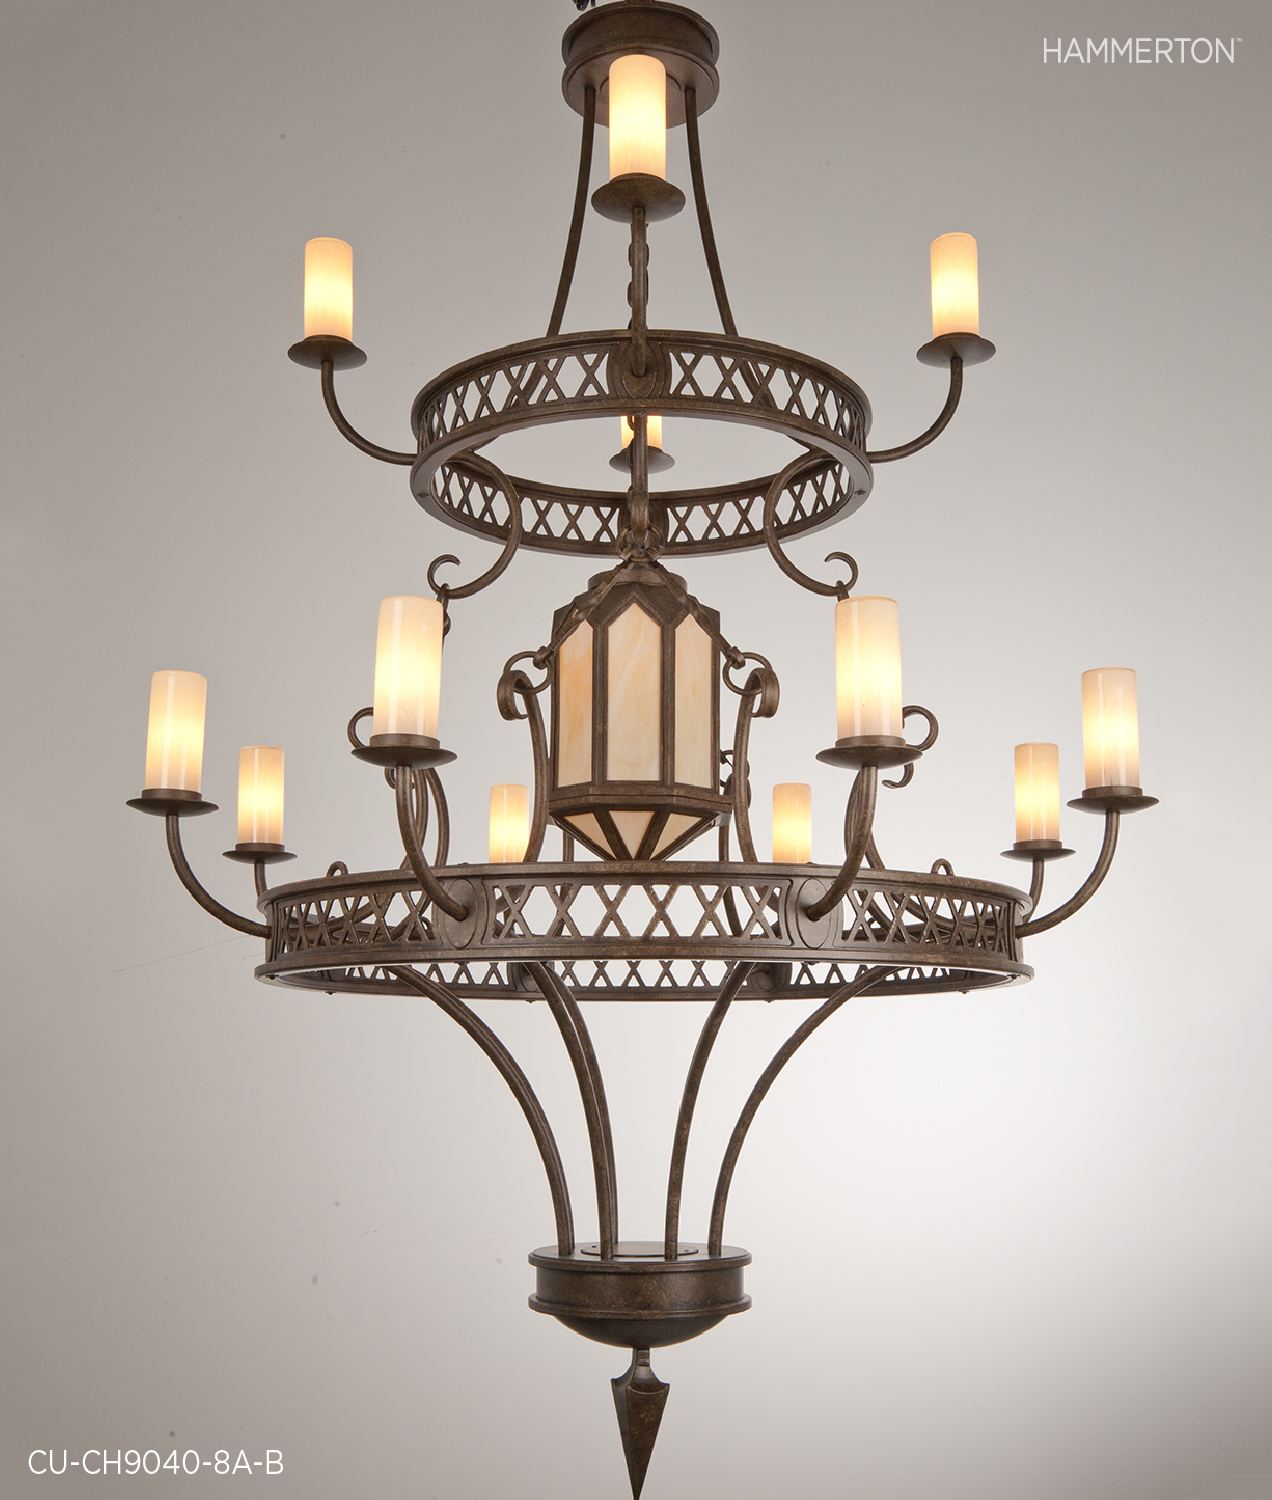 This 8 ft tall Chateau chandelier with light glass lens and 12 Light blown glass shades makes a pivotal statement.Finish: Antique Bronze.  Fixture: CU-CH9040-8A-B